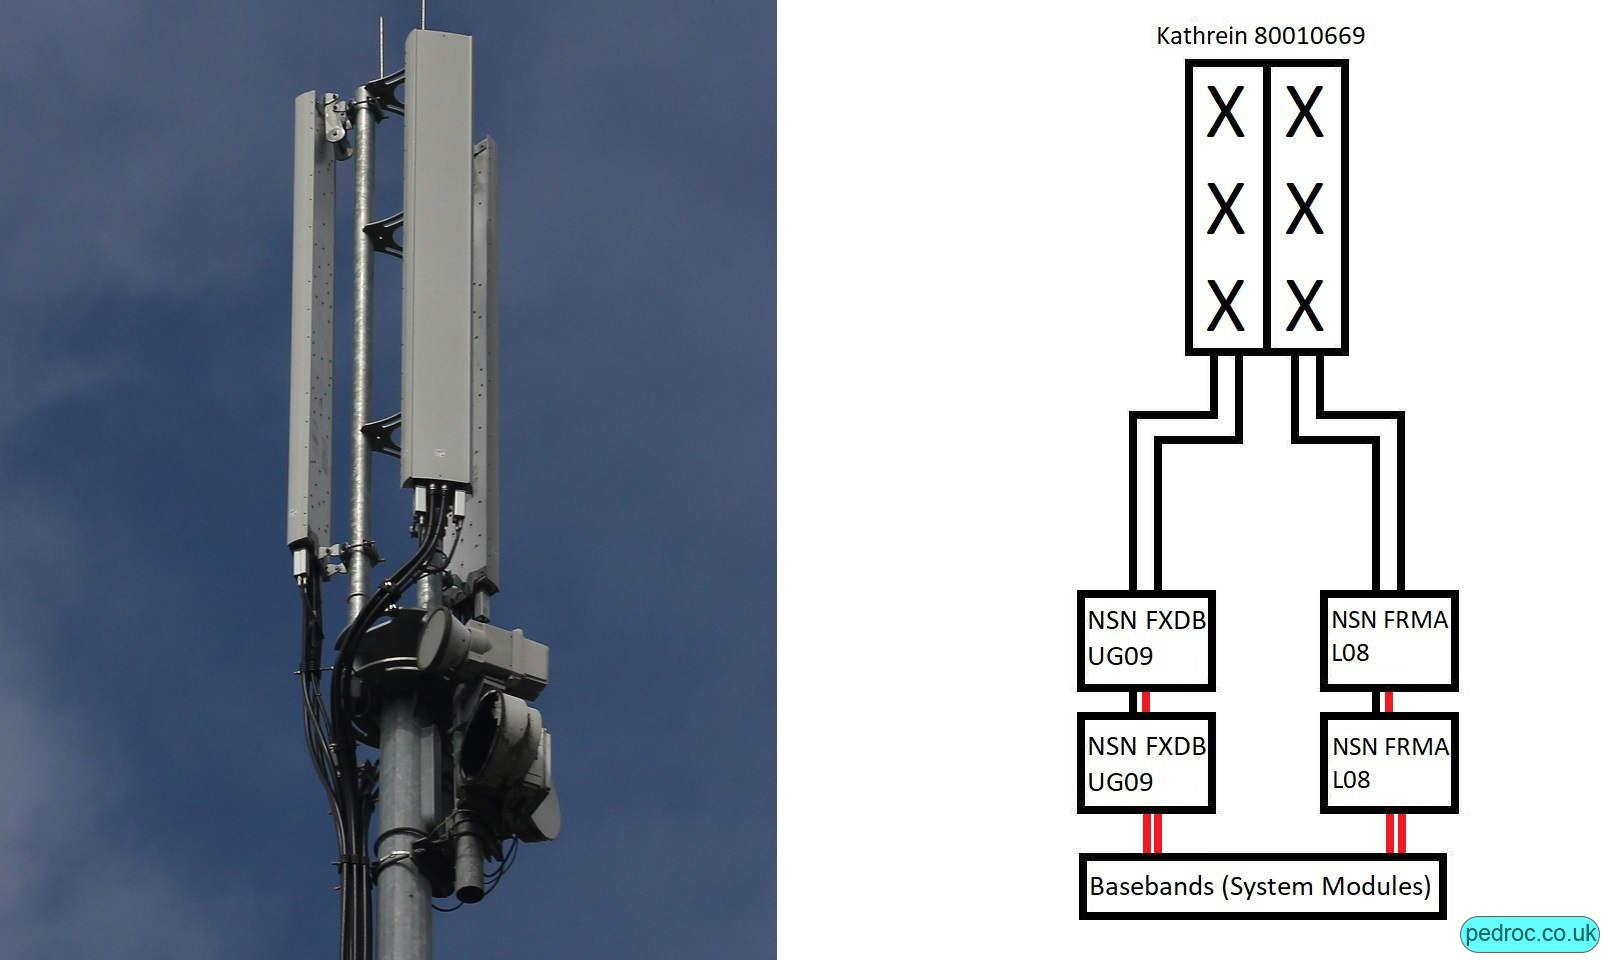 O2 Nokia low capacity site with Kathrein 80010669 antennas and Nokia FXDB radios for UG09 and FRMA for L08.